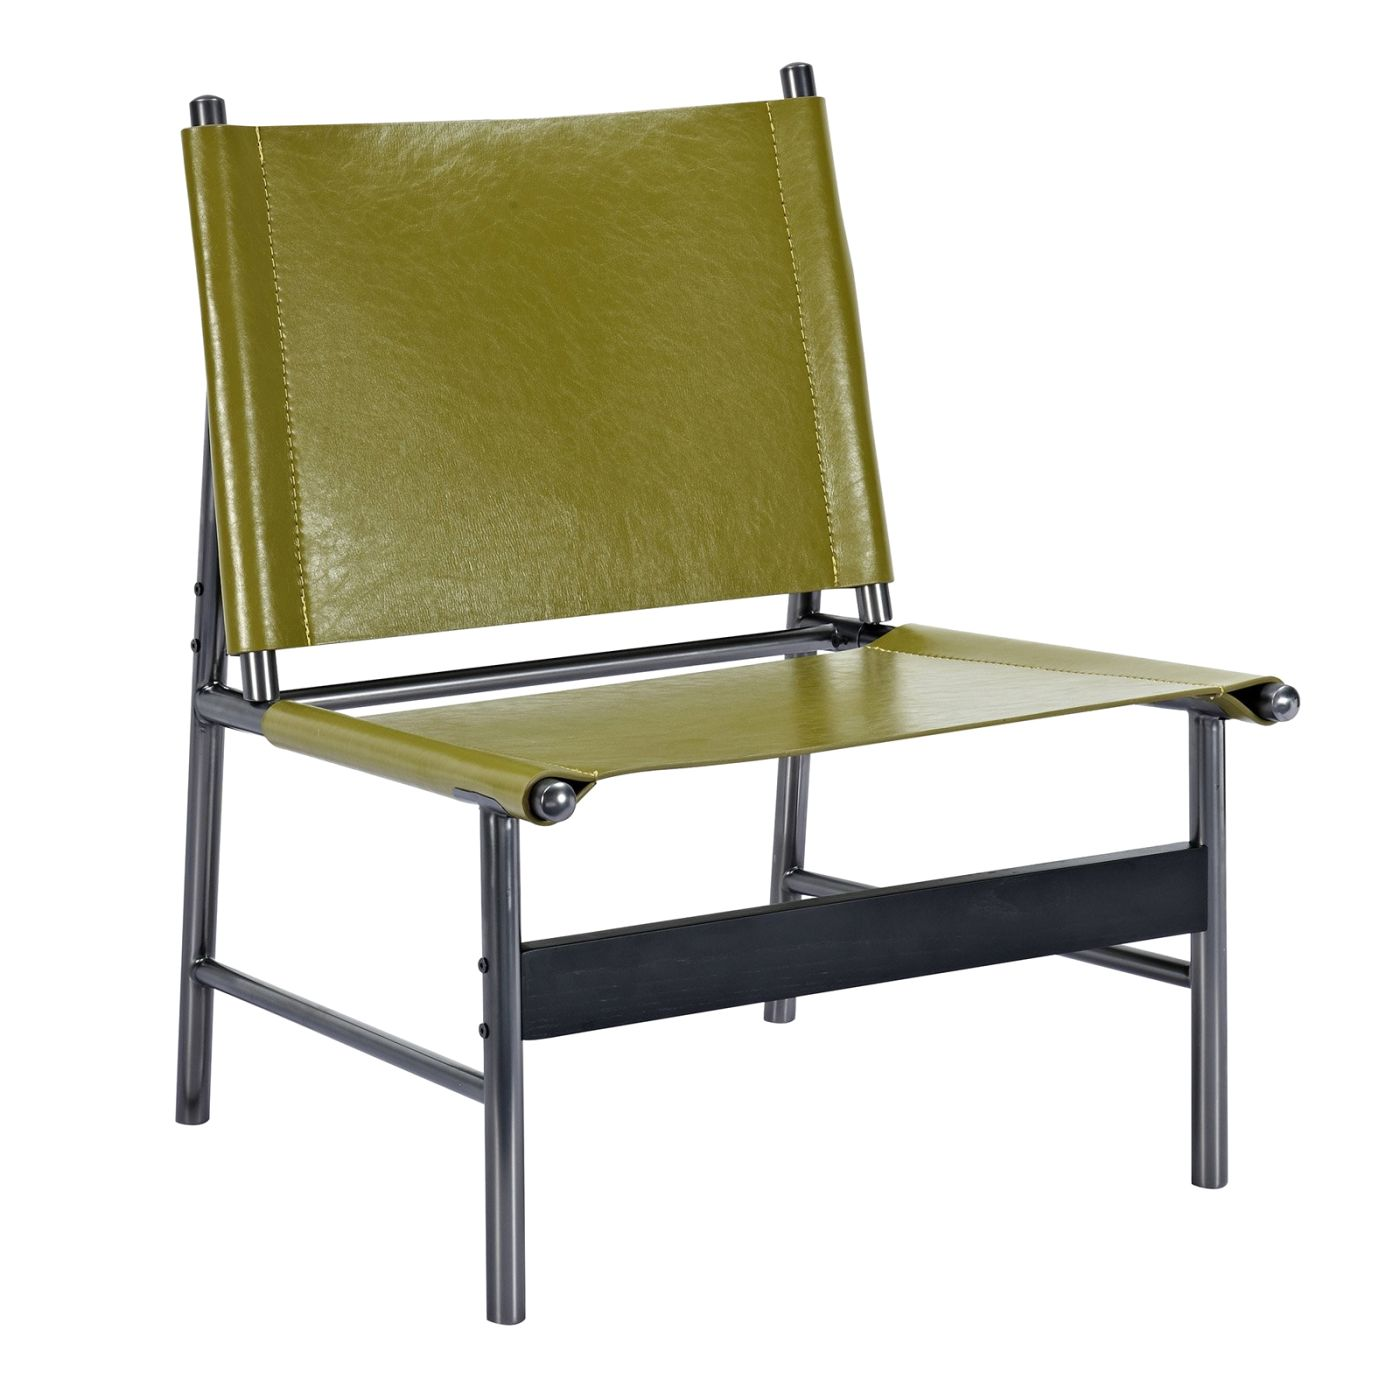 Slad chair olive green black accent